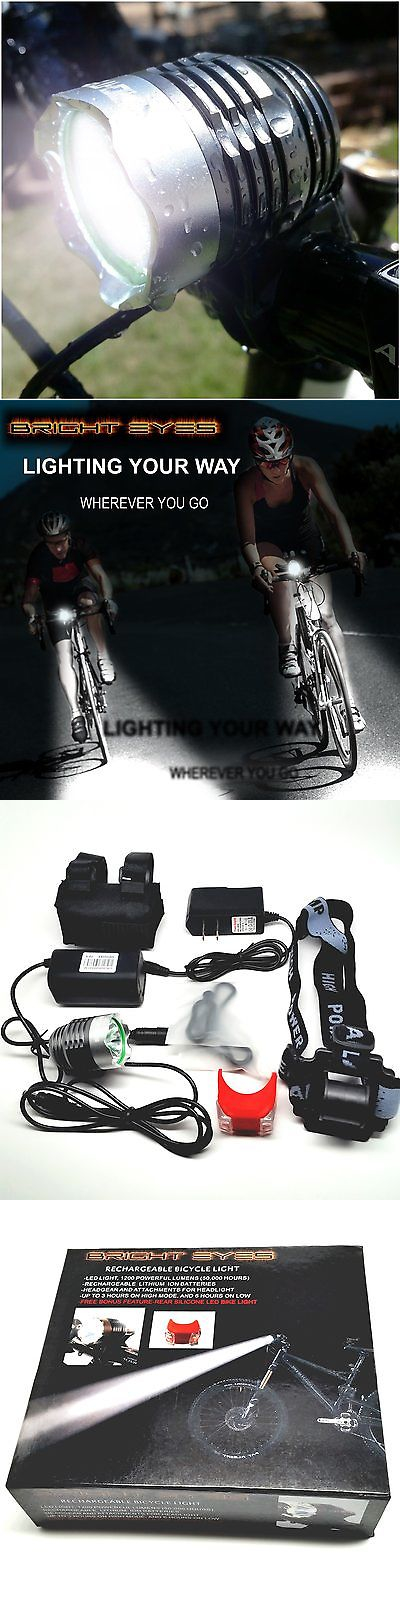 High Quality Lights And Reflectors 22689: One Week !!!! Bright Eyes Bike Bicycle Head